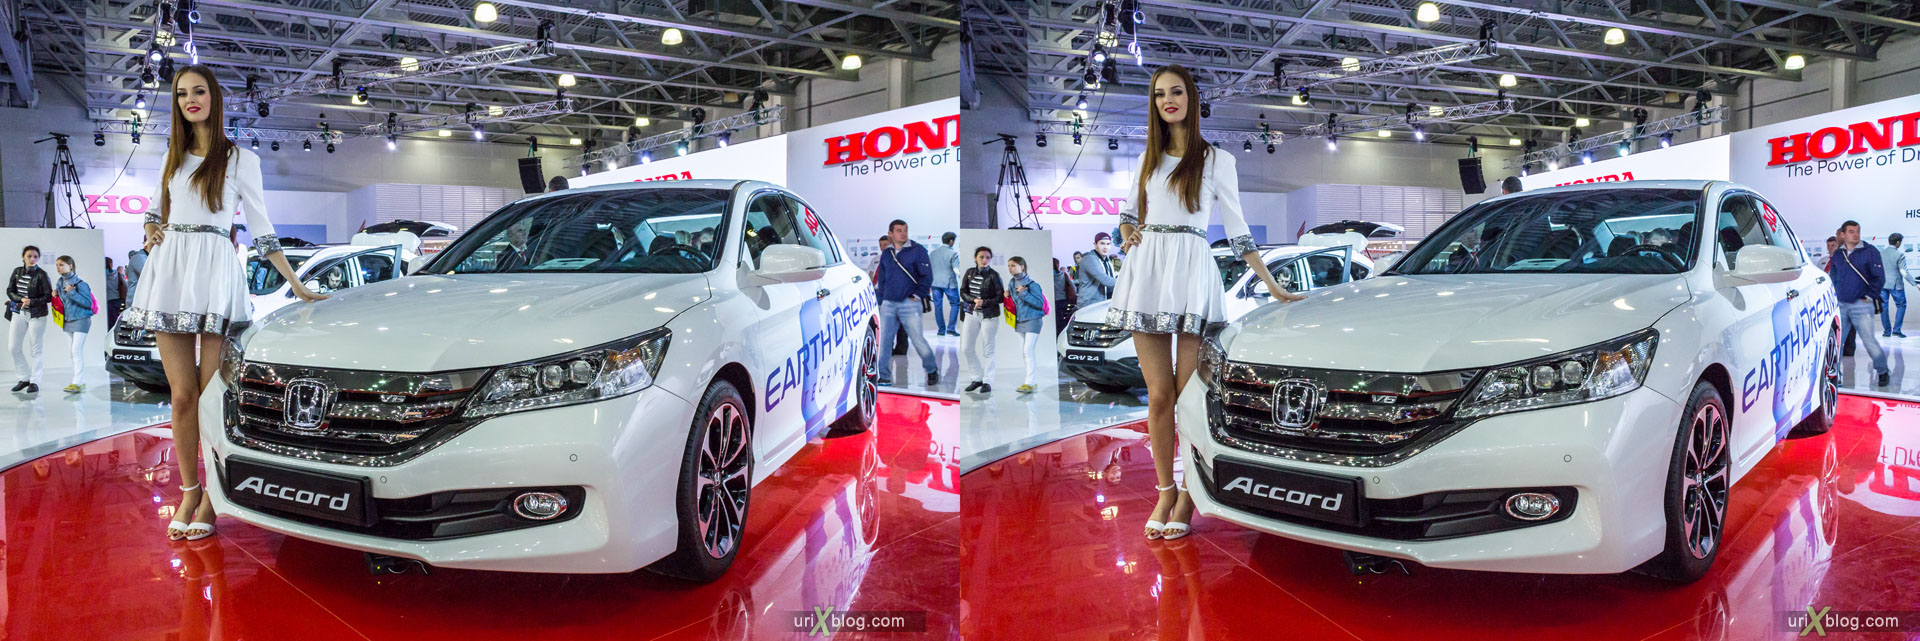 Honda Accord, Moscow International Automobile Salon 2014, MIAS 2014, girls, models, Crocus Expo, Moscow, Russia, 3D, stereo pair, cross-eyed, crossview, cross view stereo pair, stereoscopic, 2014